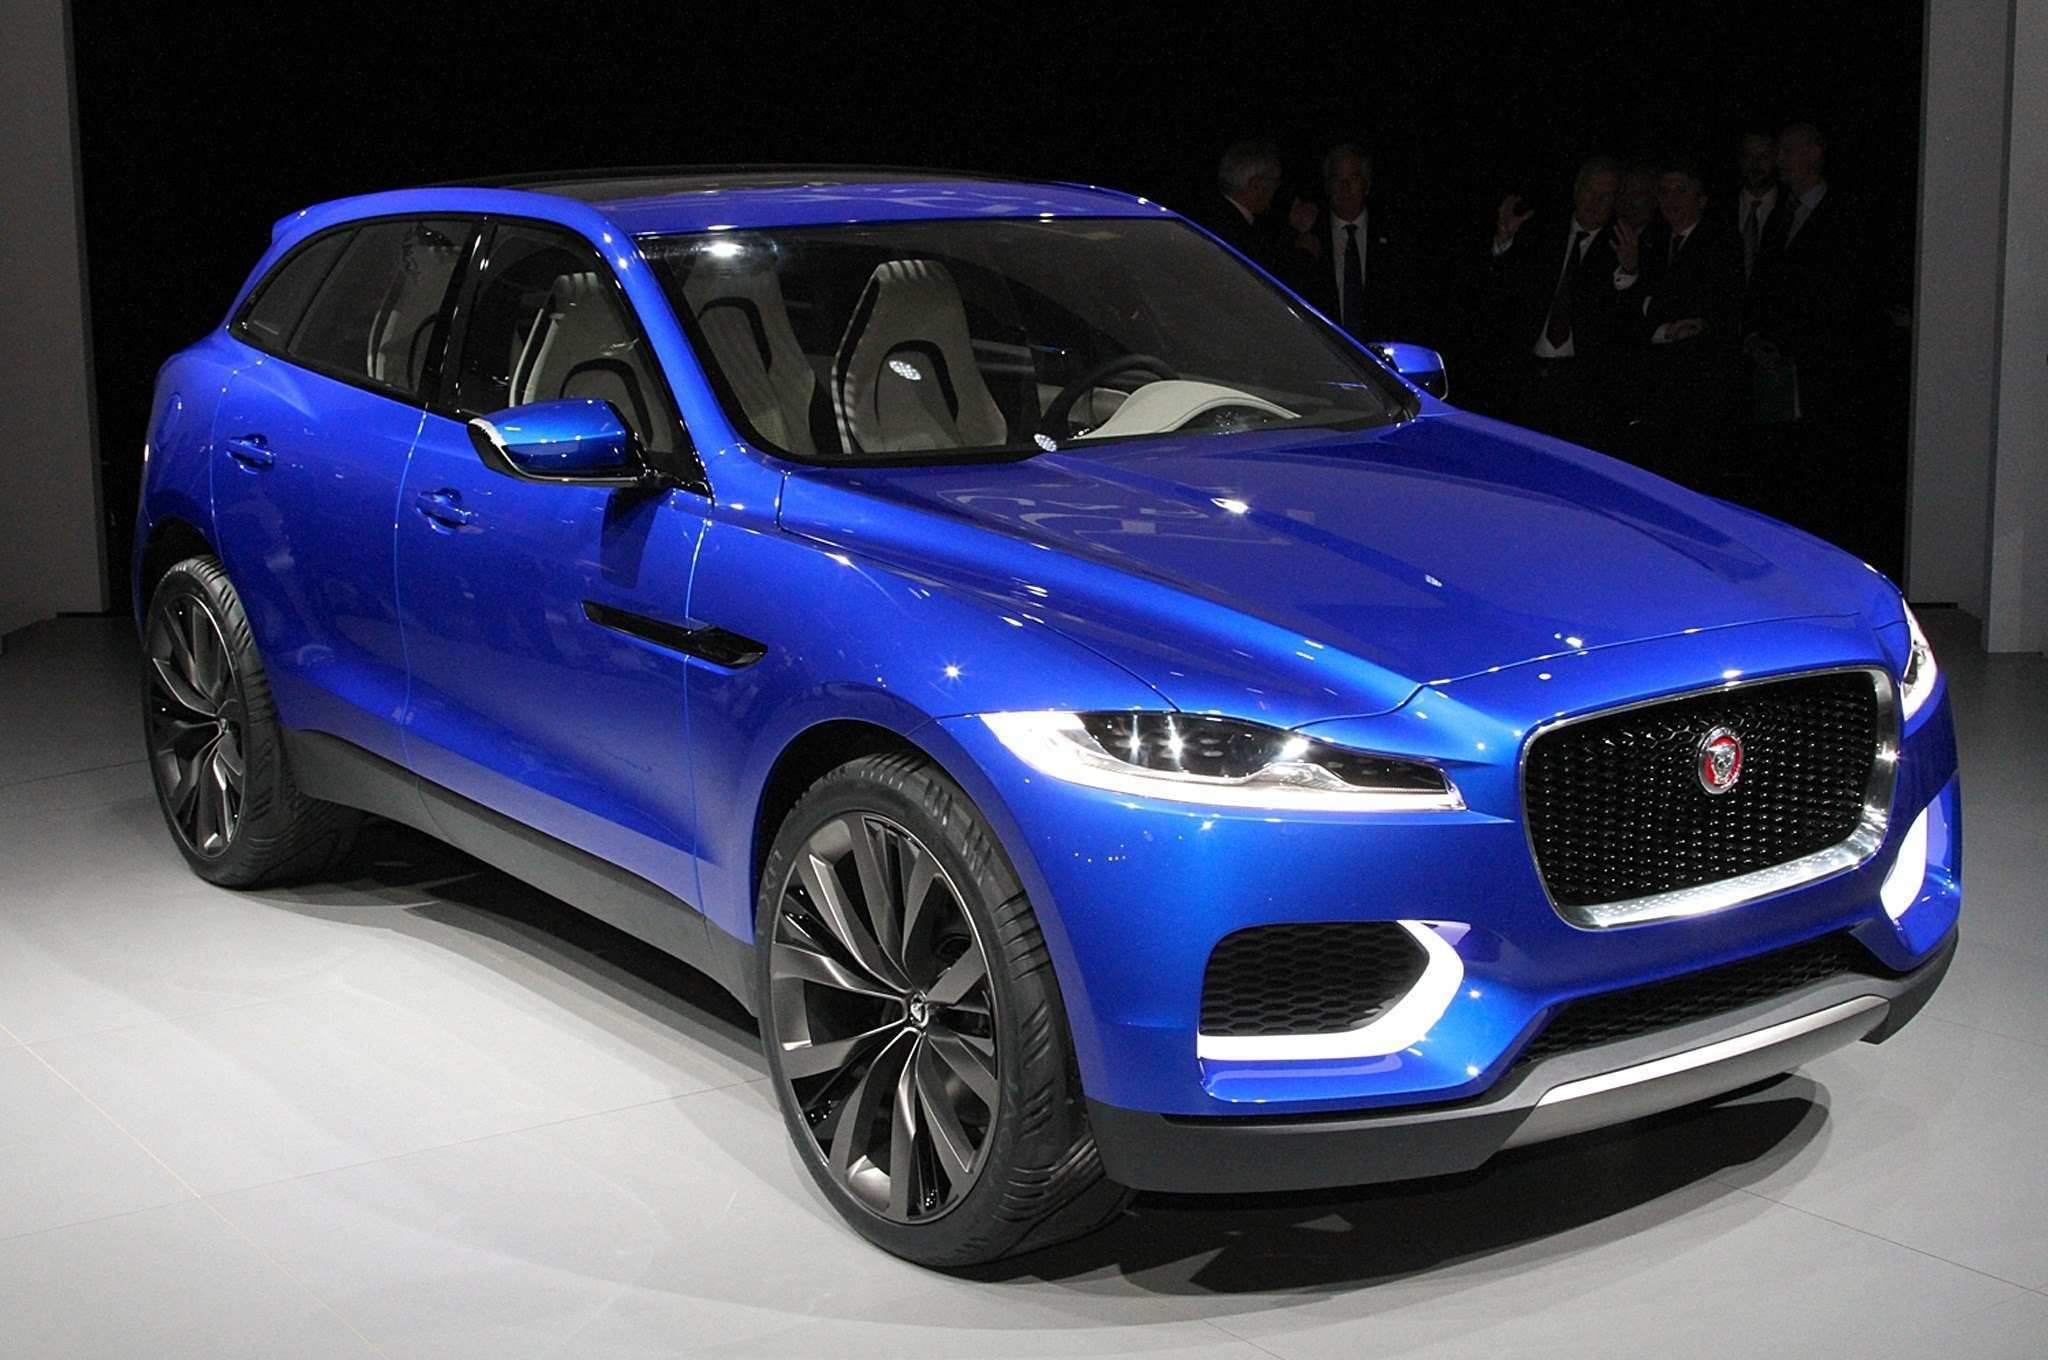 54 All New 2020 Jaguar C X17 Crossover Reviews for 2020 Jaguar C X17 Crossover